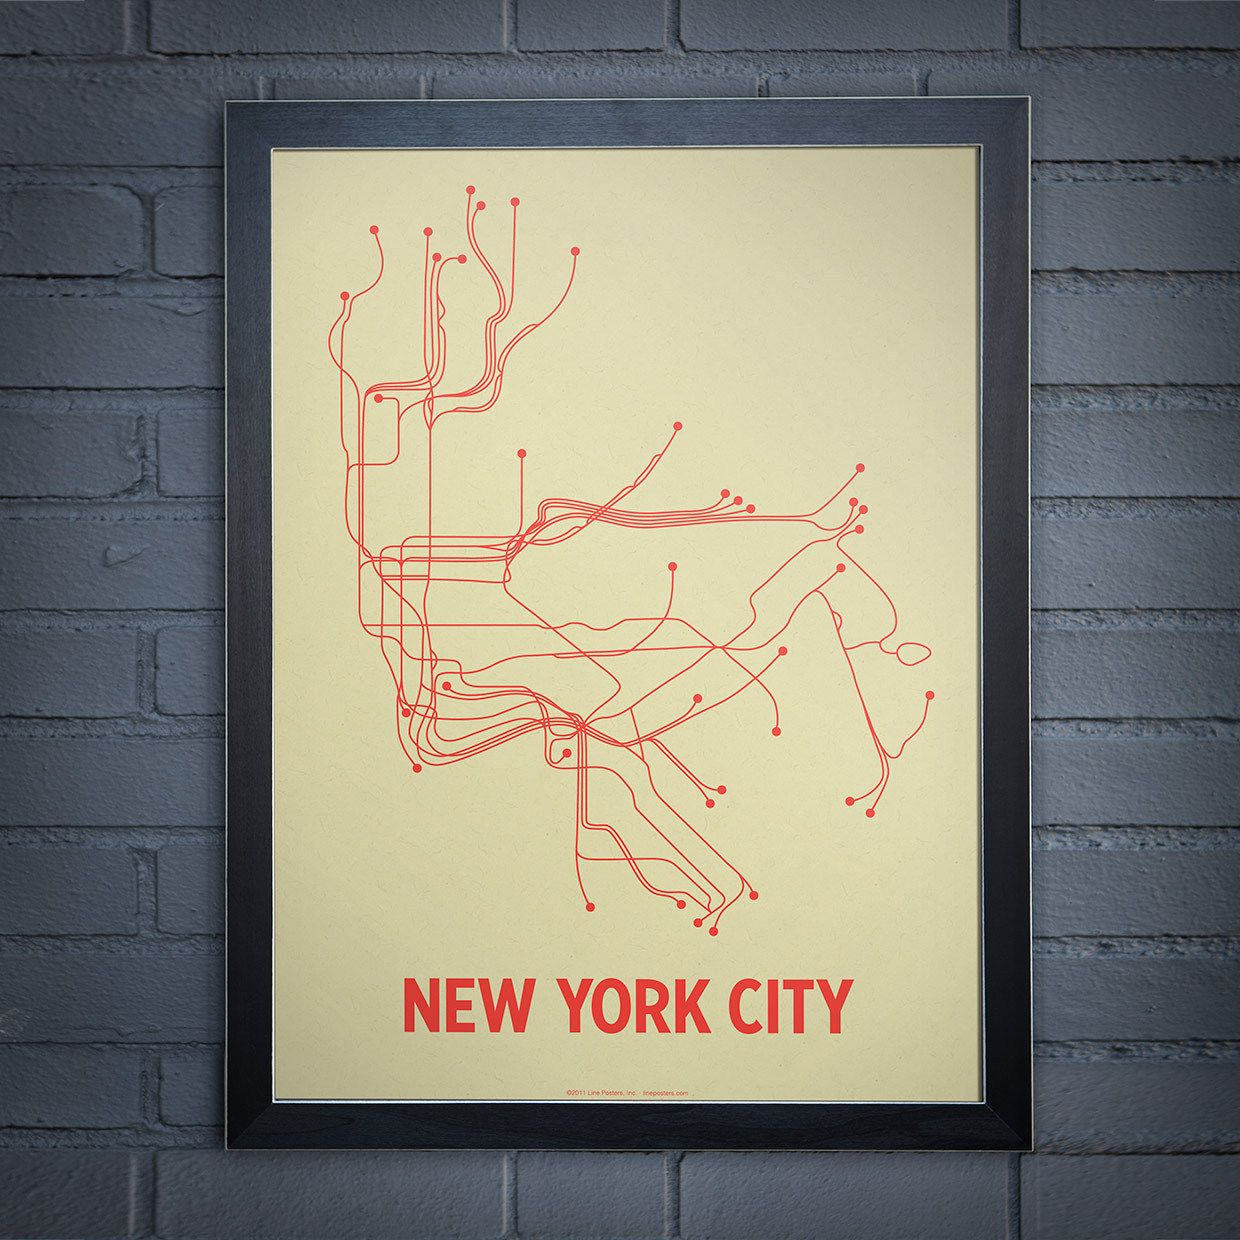 NYC Screen Print Grn & Orng - Lineposters